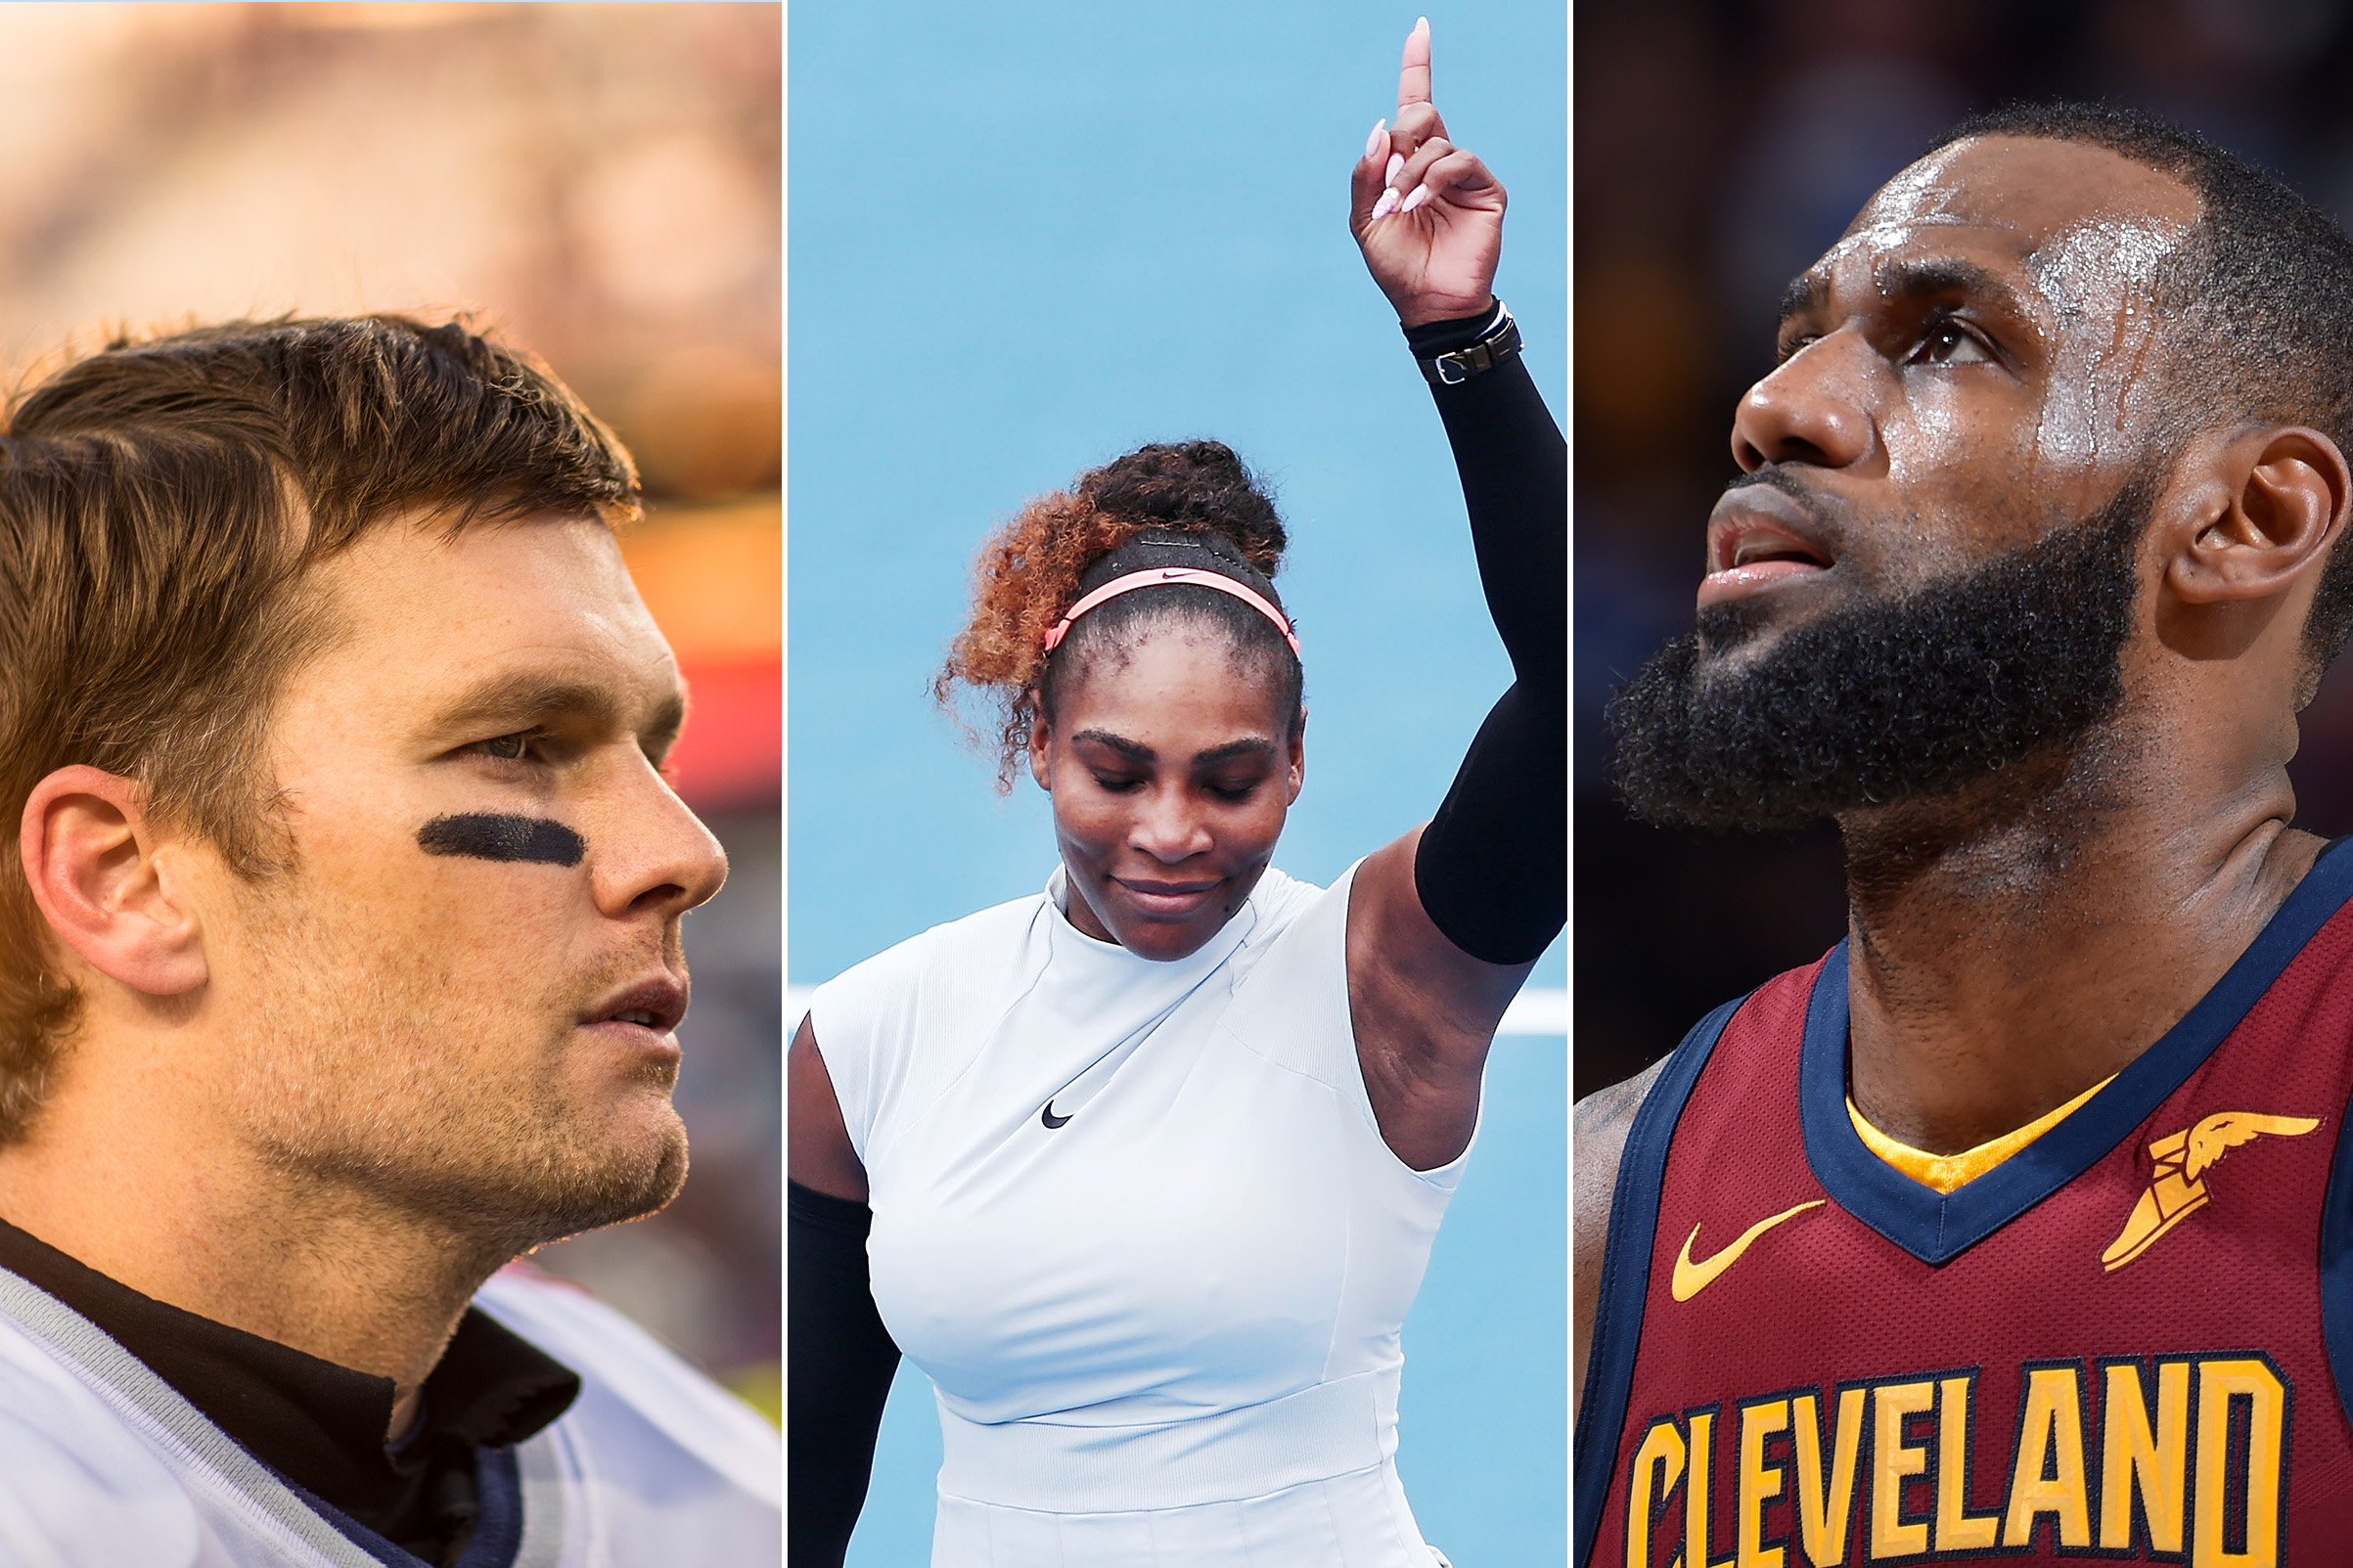 Tom Brady, Serena Williams and Lebron James.